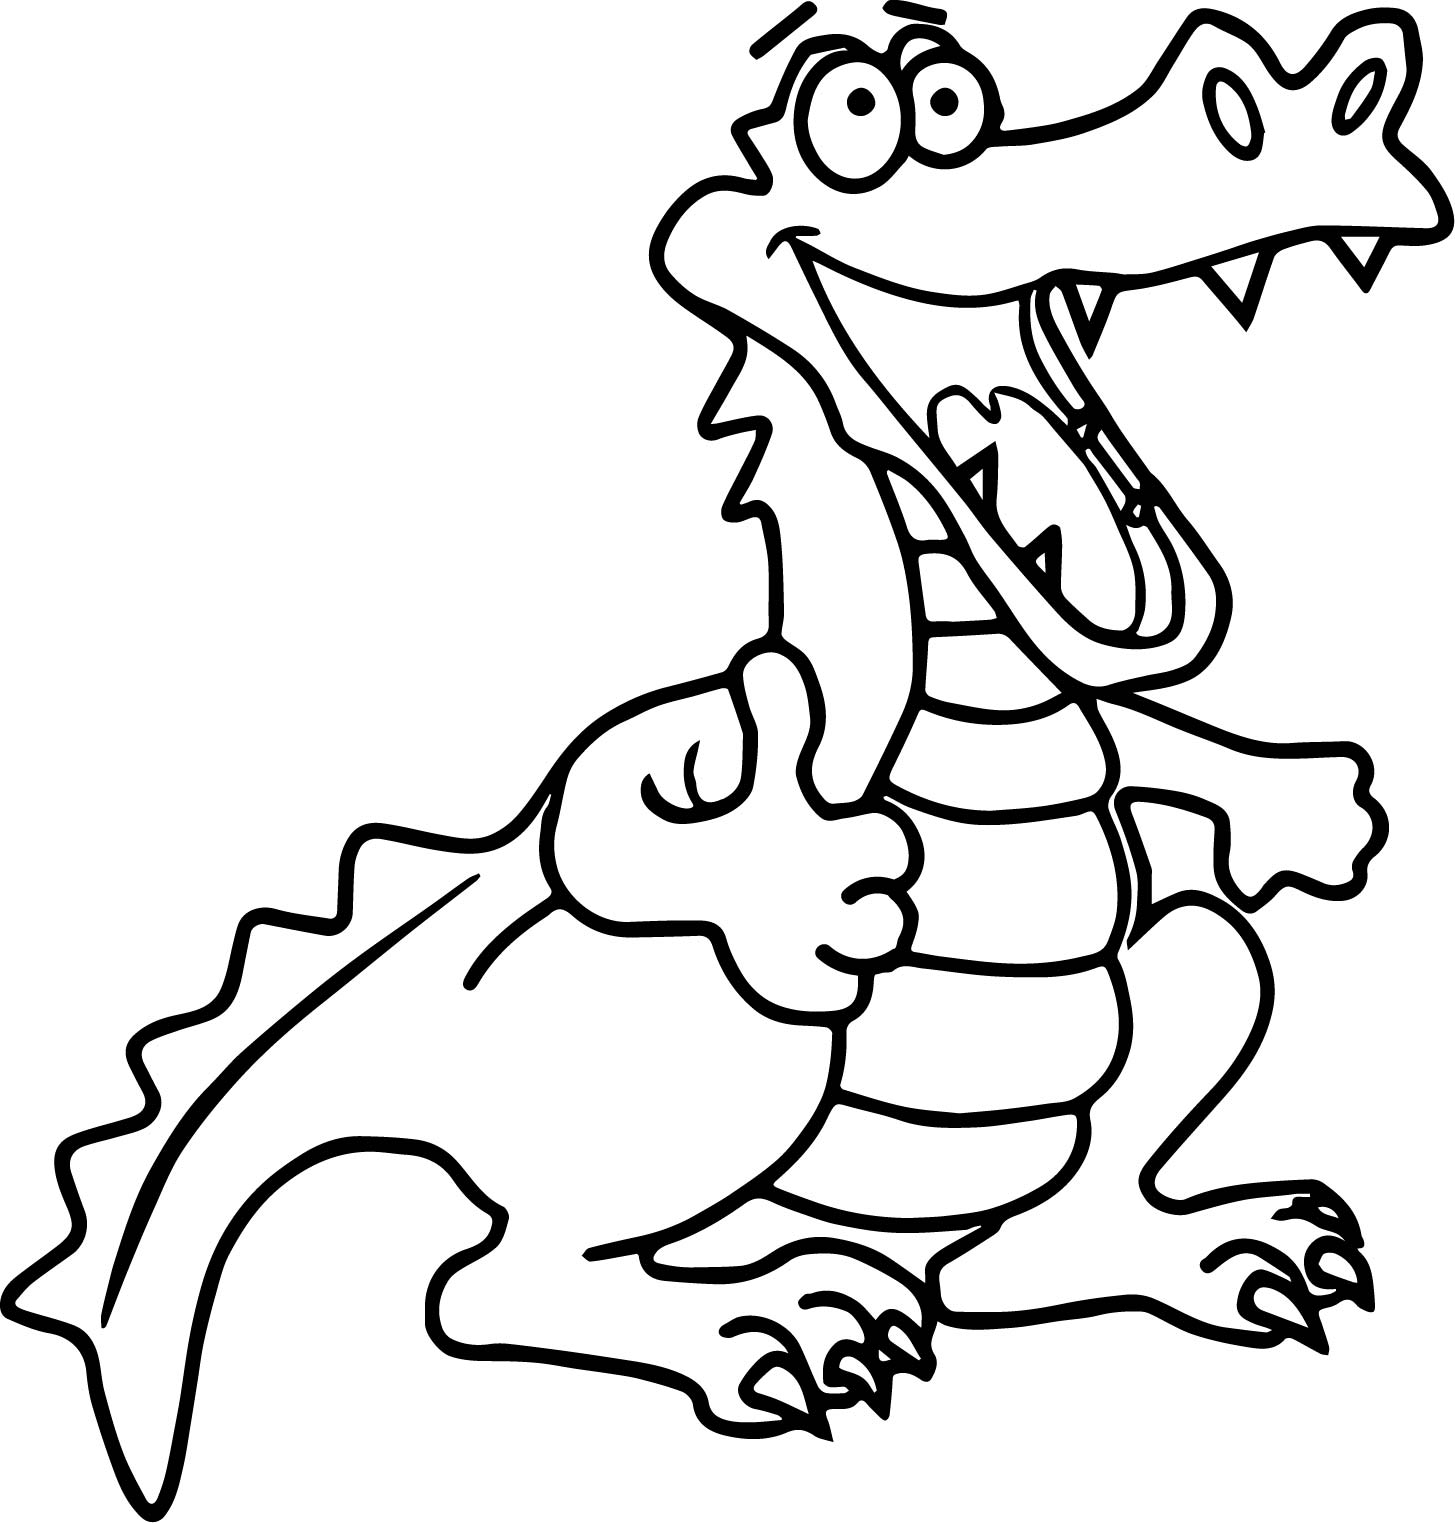 1455x1523 Happy Crocodile Alligator Coloring Page Wecoloringpage